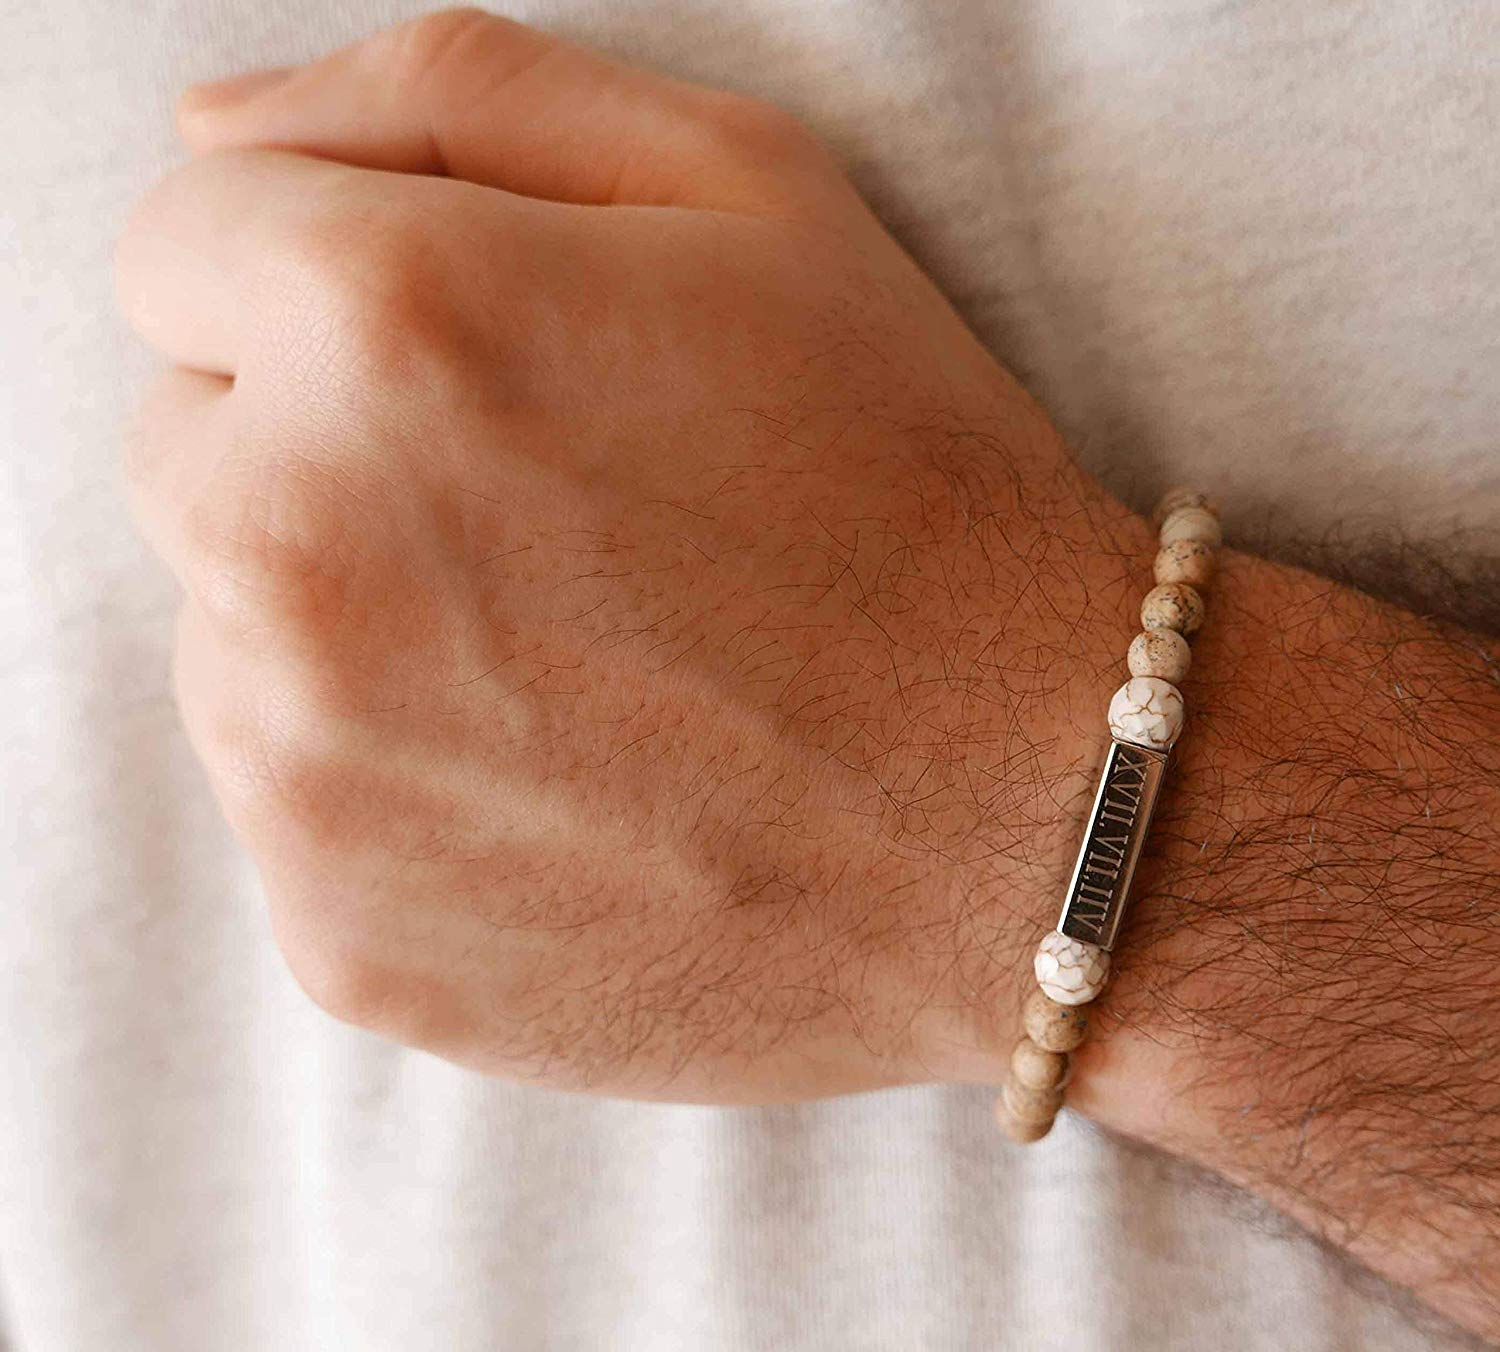 Handmade Engraved Bracelet For Men Made of Gemstone Beads and Set With Stainless Steel Palette By Galis Jewelry